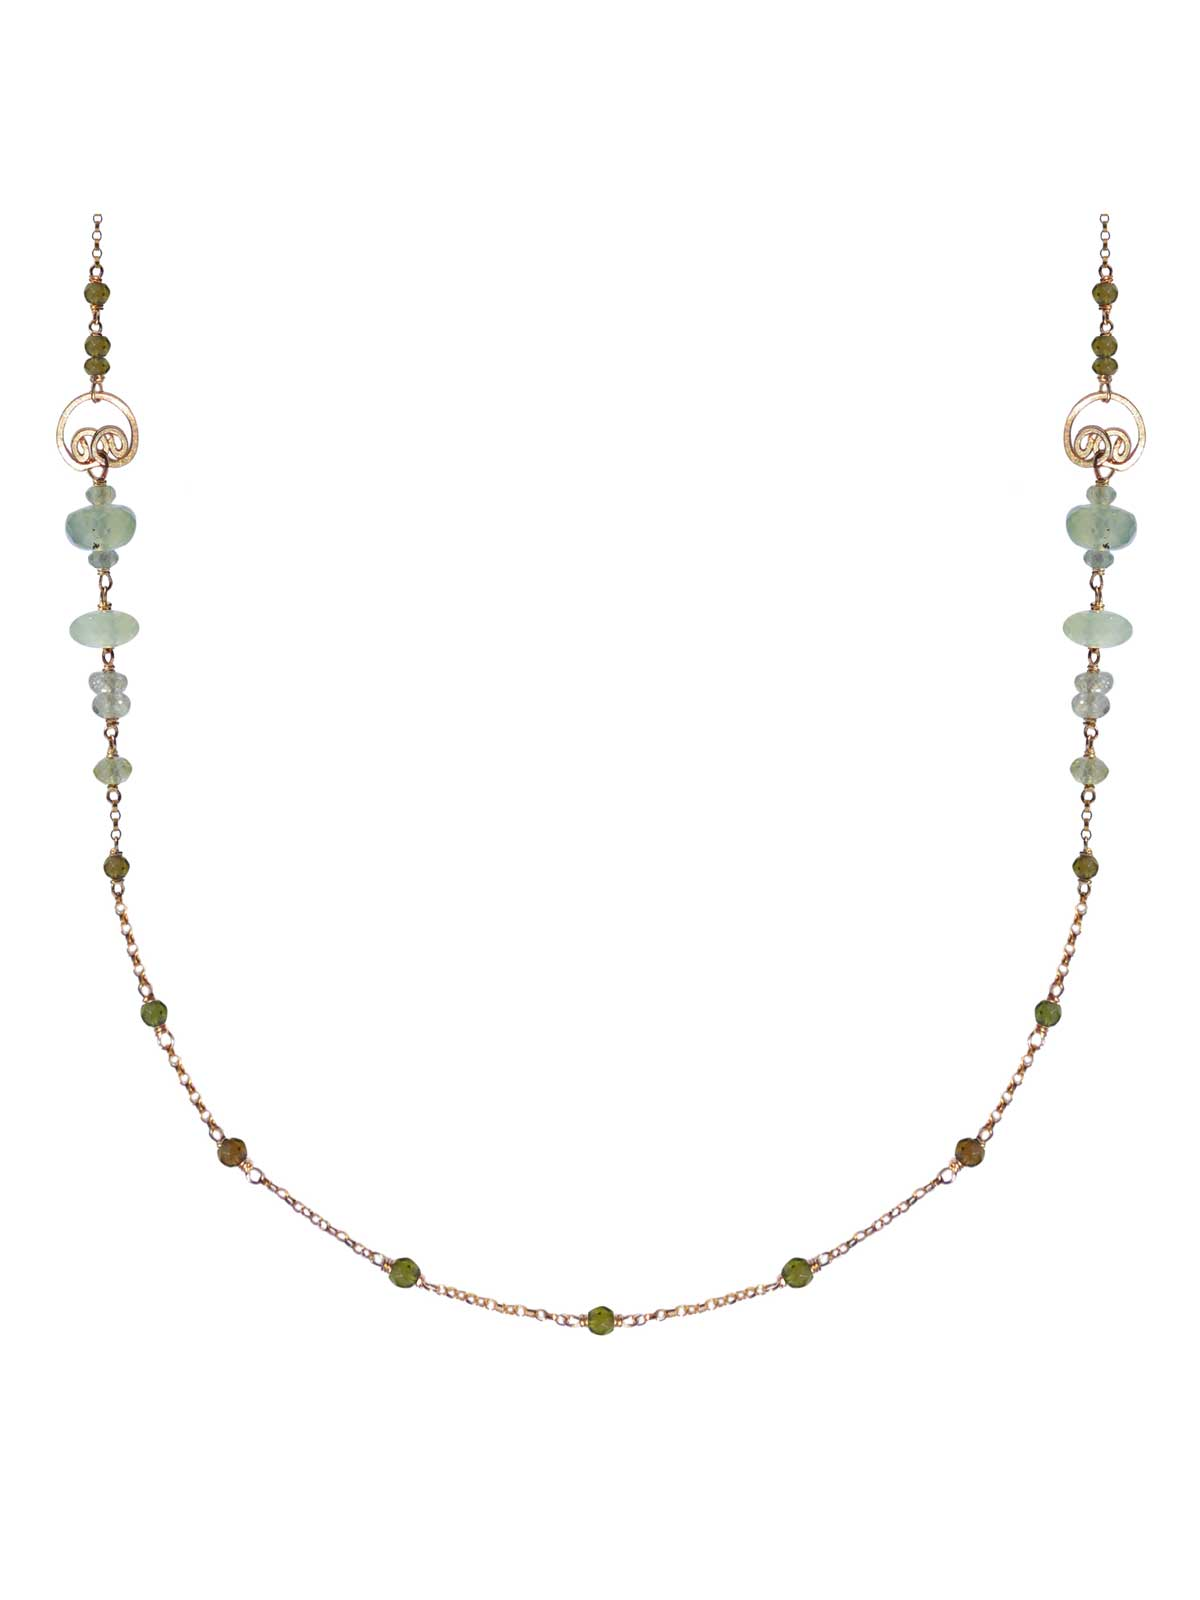 Necklace in 14K Gold-filled chain faceted Prehnite Tourmaline